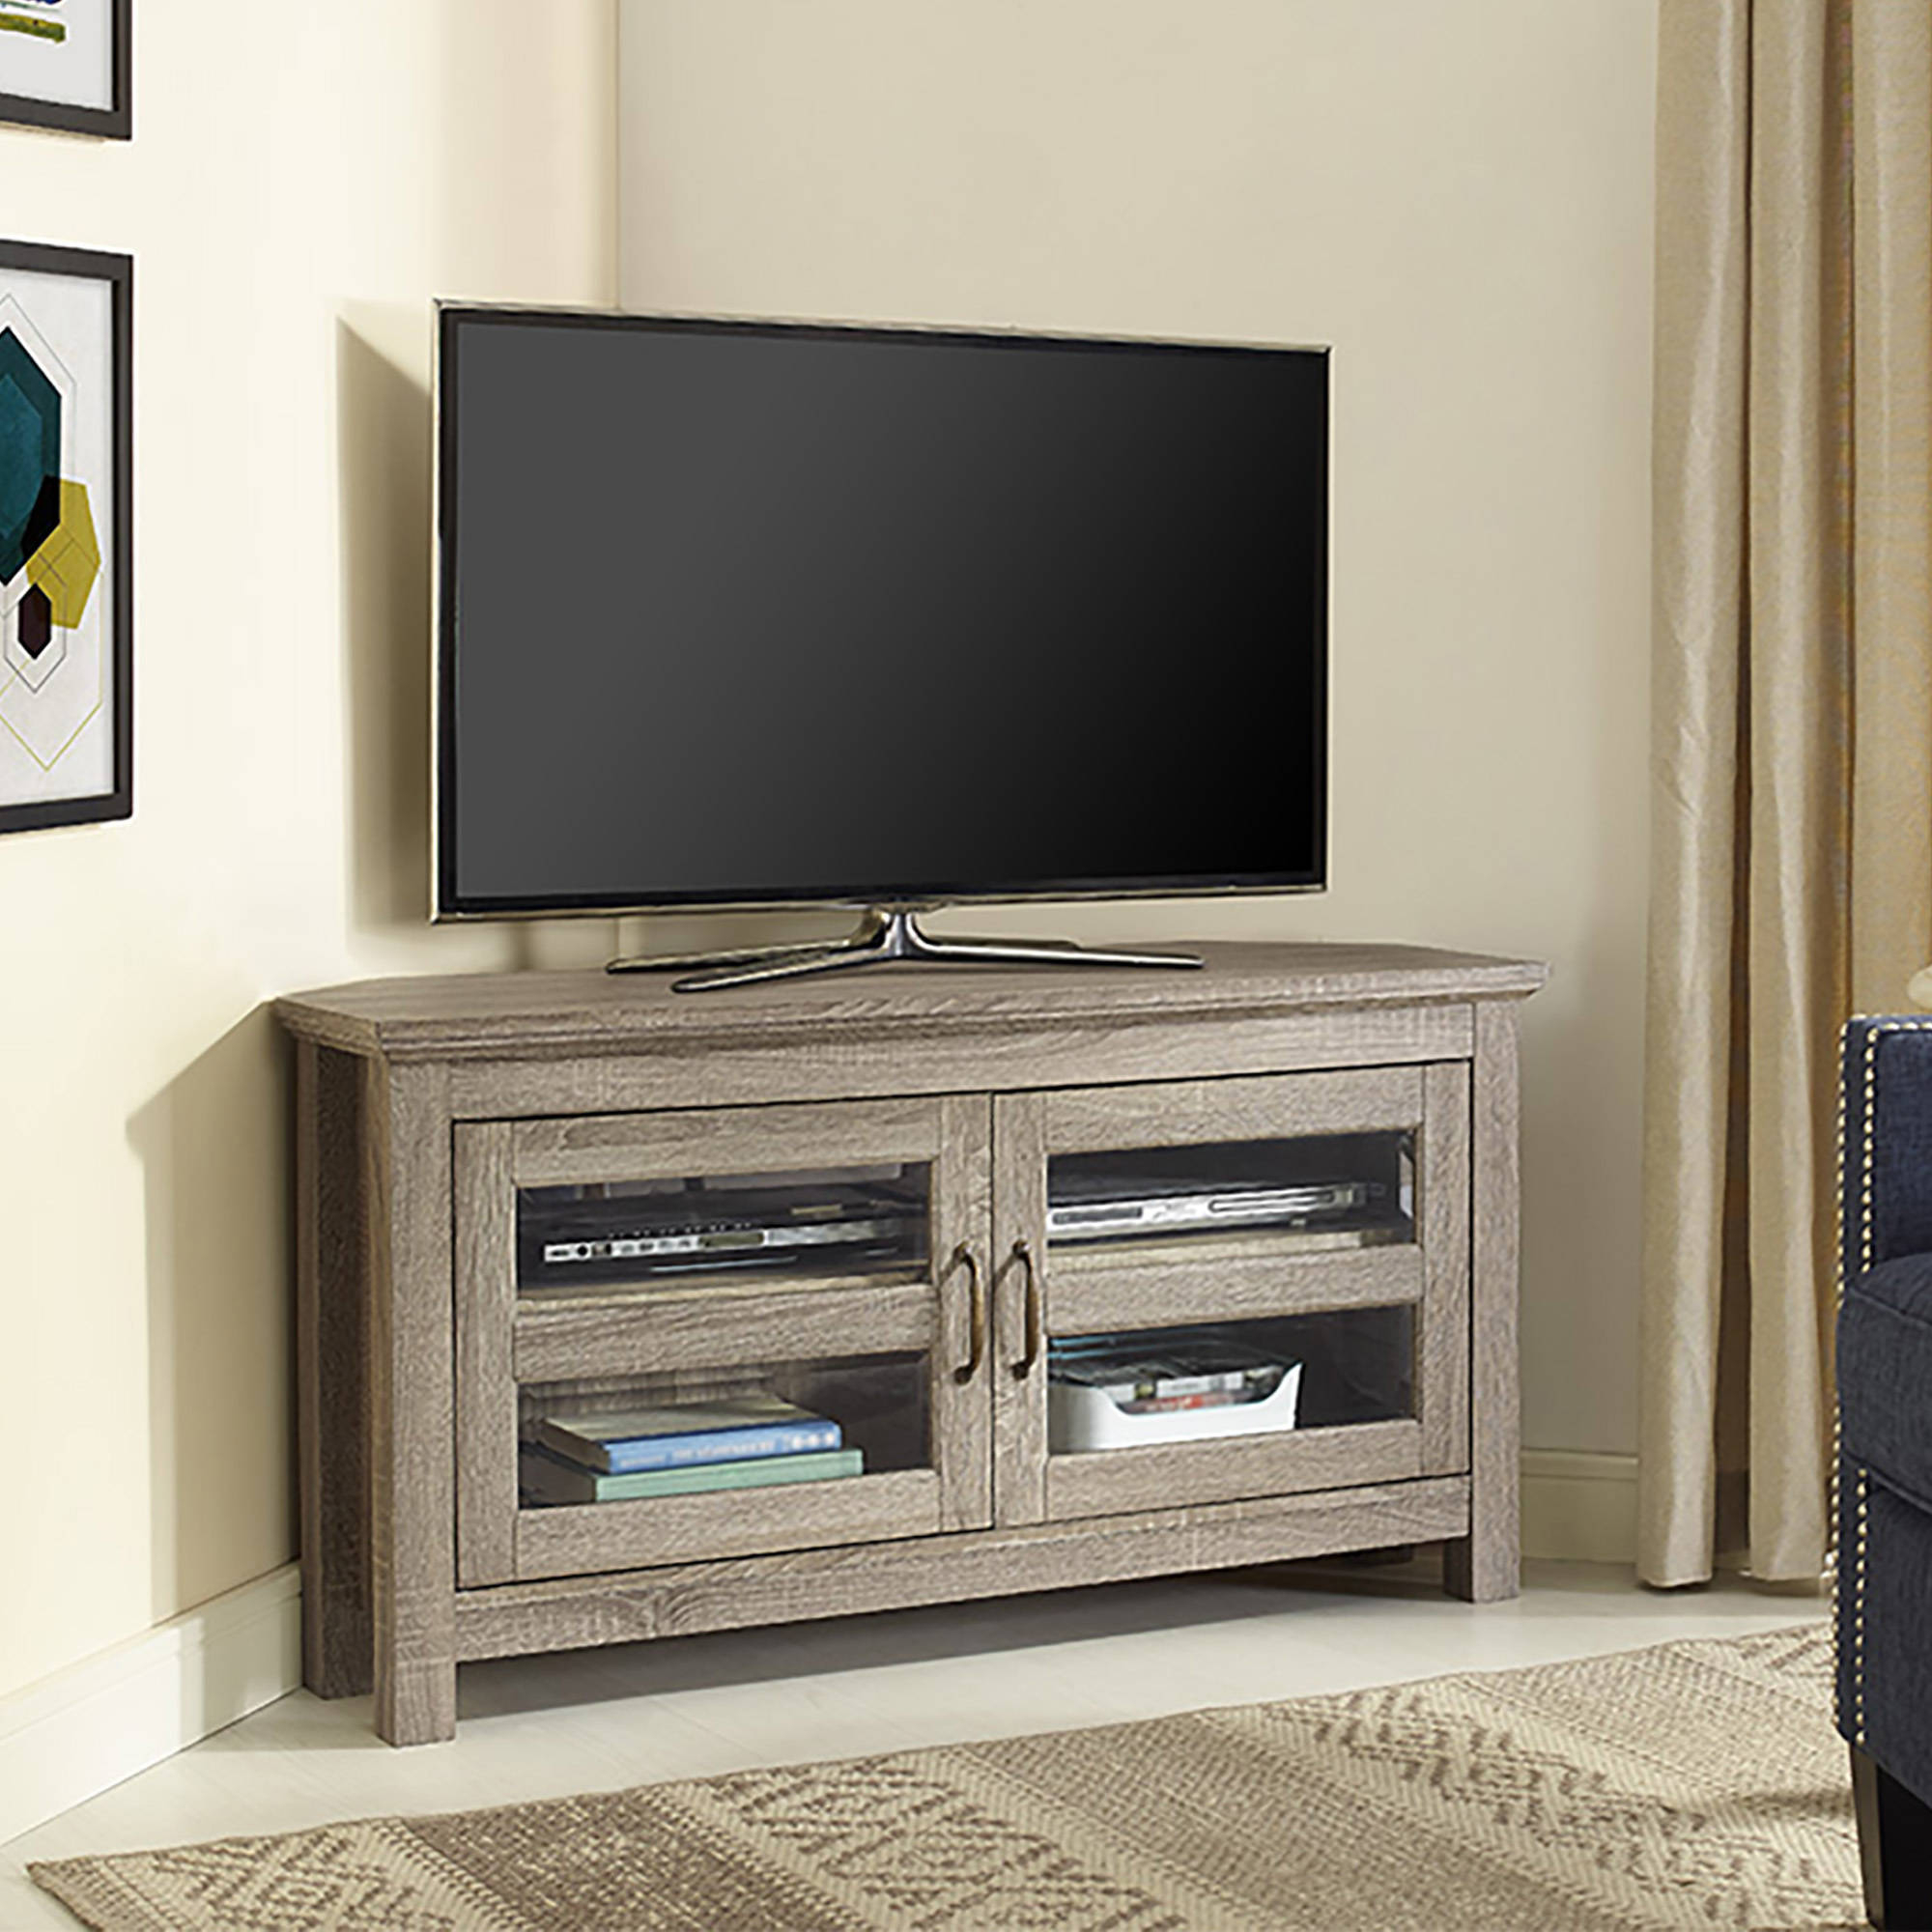 Most Current Corner Tv Stands For 46 Inch Flat Screen In Universal Tv Base Walmart We Furniture 70 Wood Stand Walker Edison (Gallery 5 of 20)